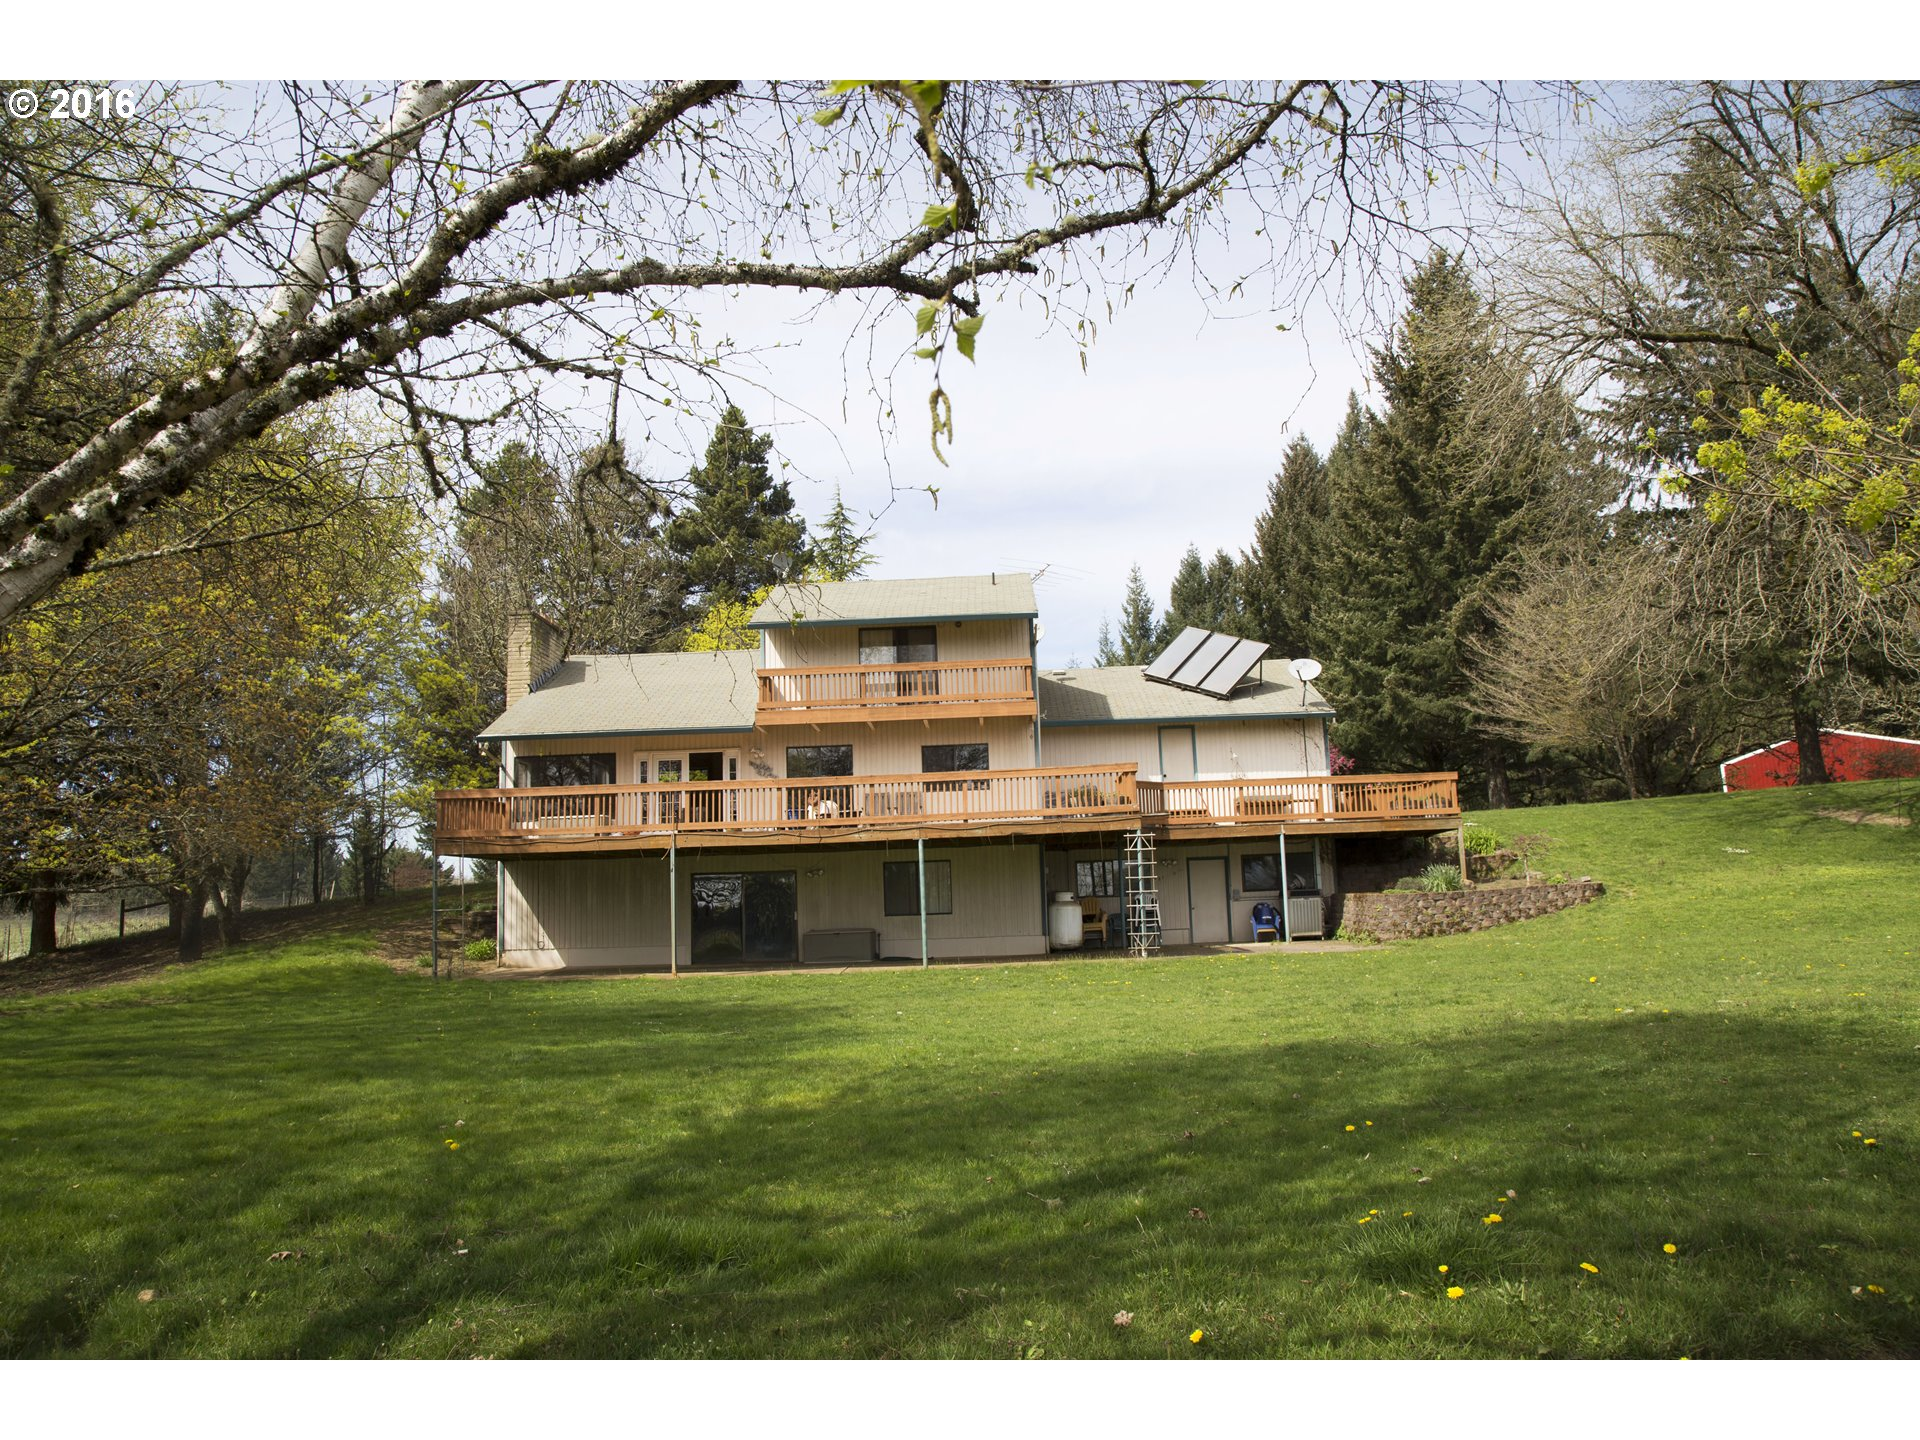 19486 NE RIBBON RIDGE RD, Newberg, OR 97132